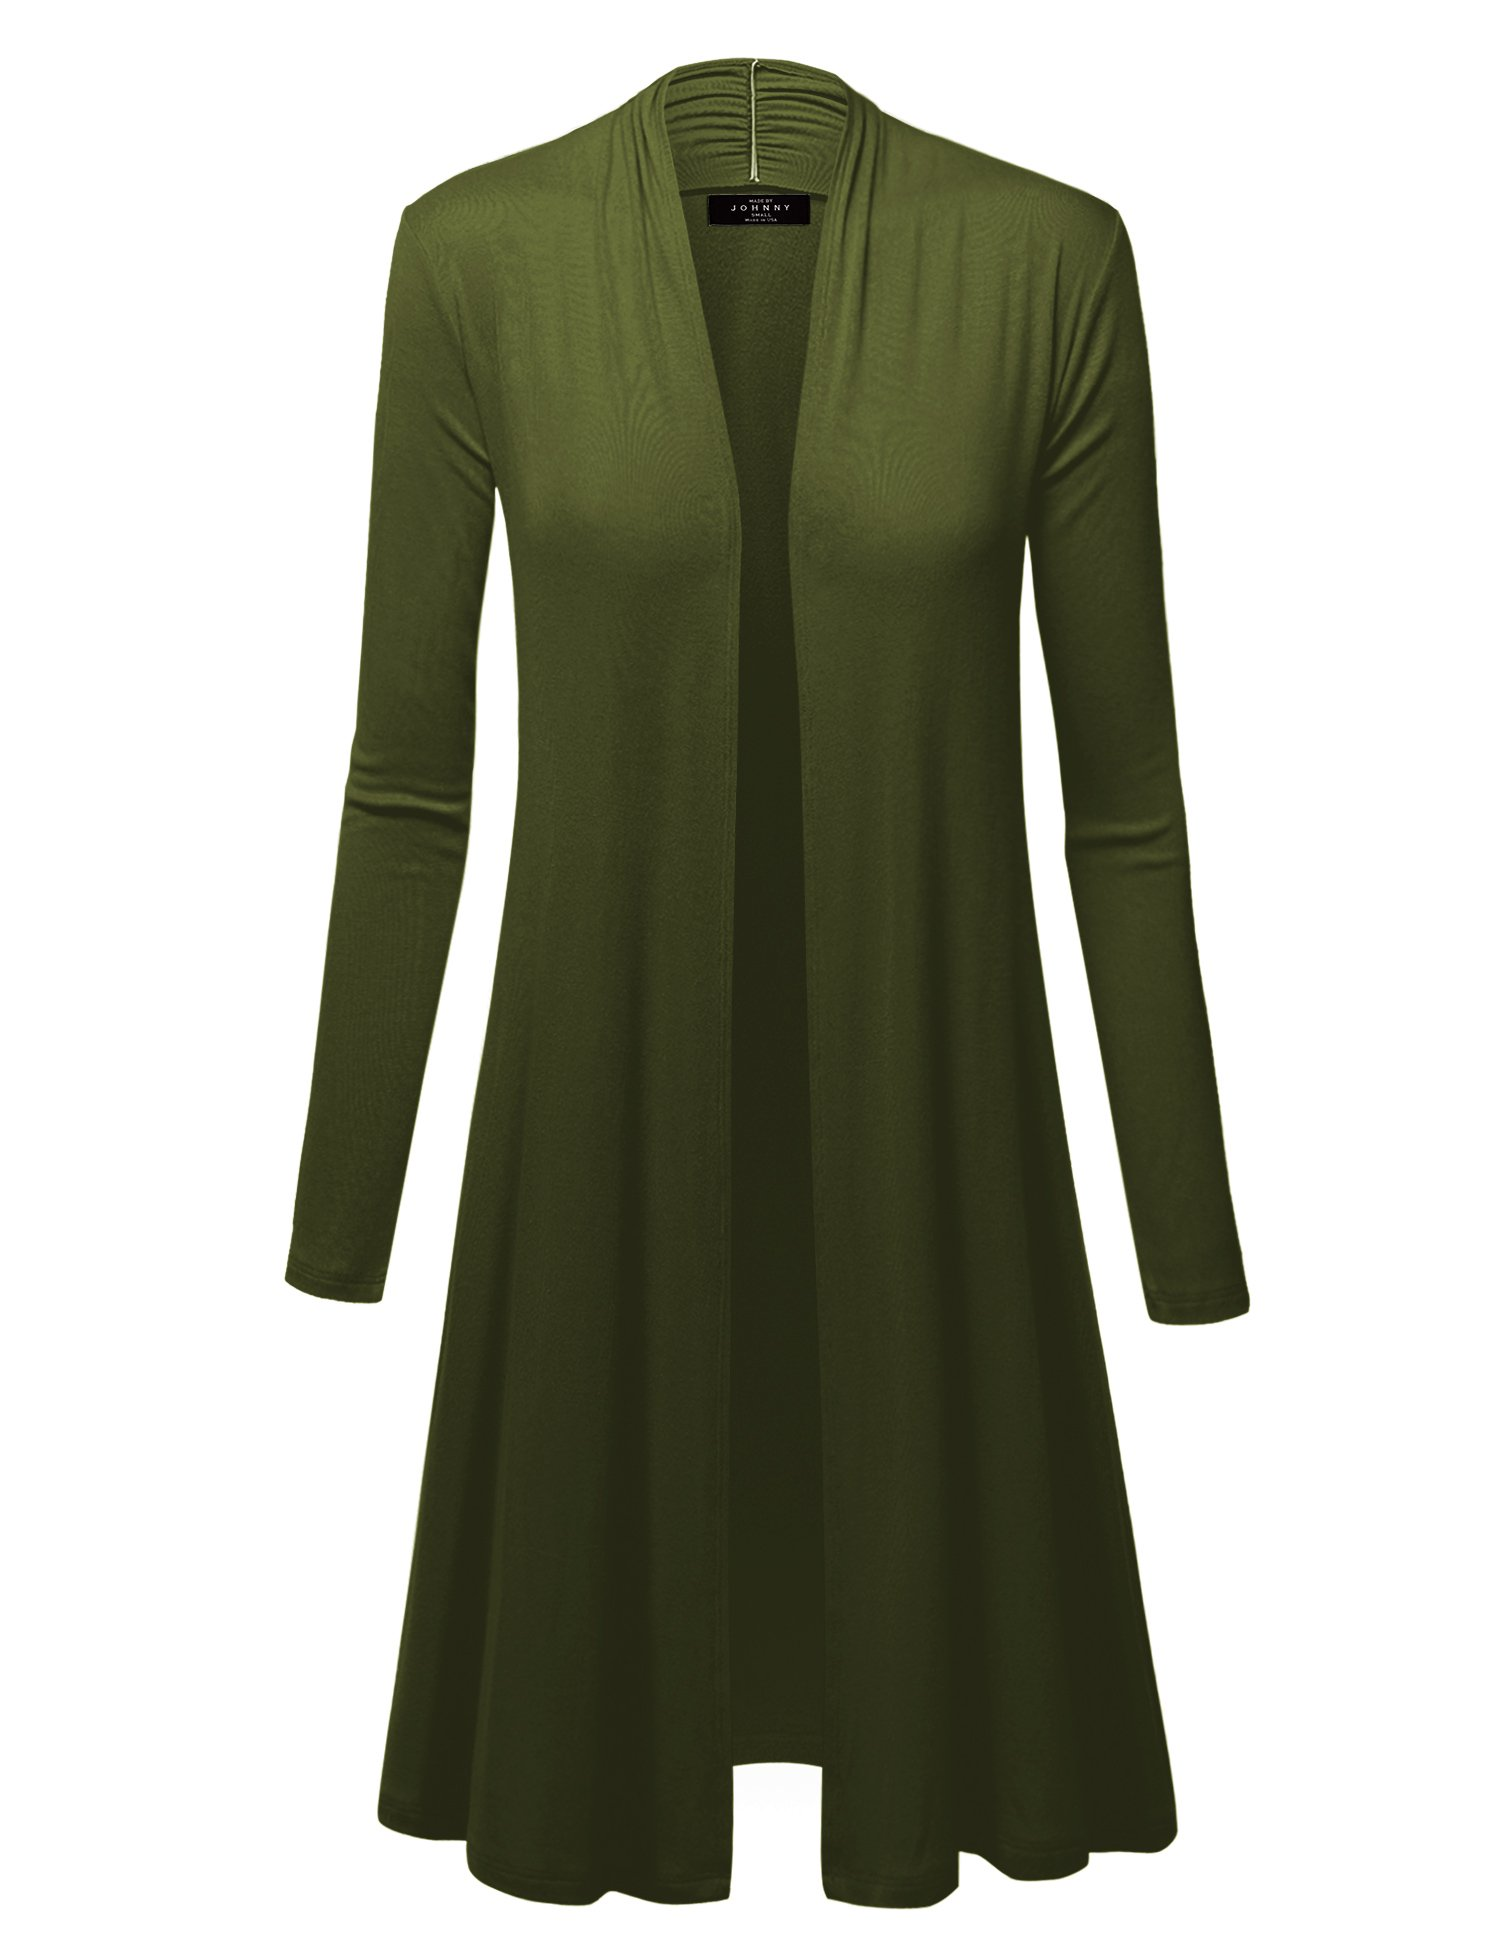 WSK1048 Womens Solid Long Sleeve Open Front Long Cardigan L Olive